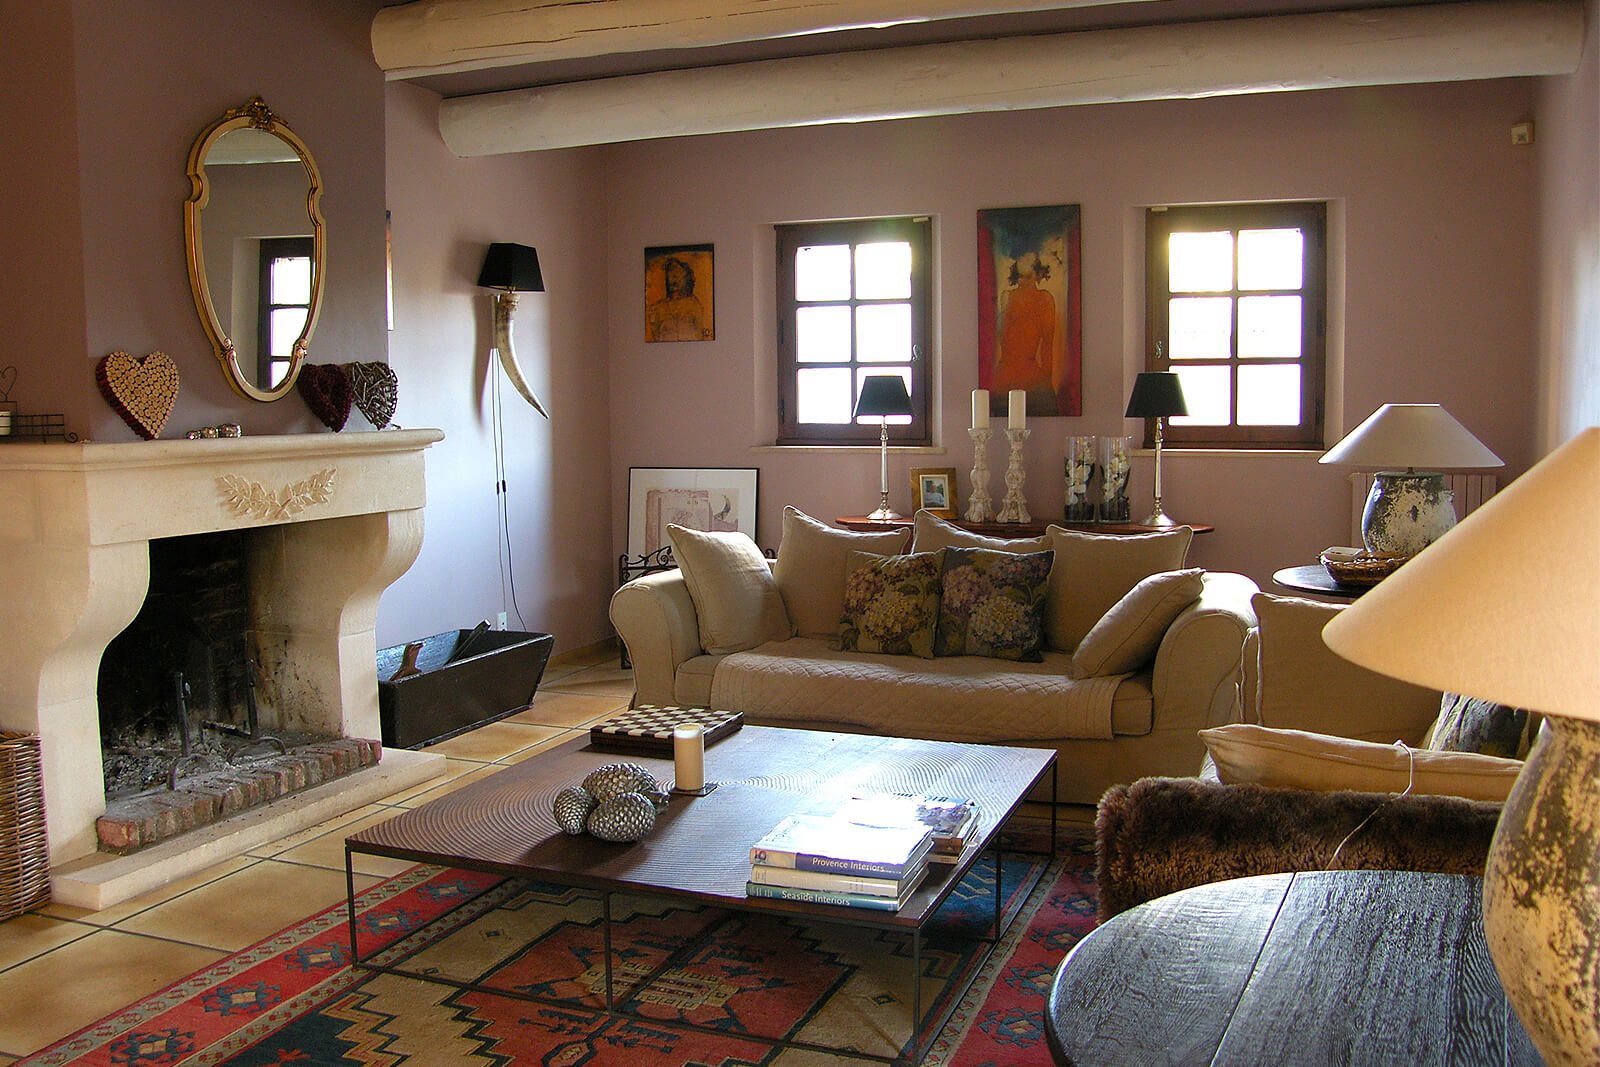 Charming Noves B&B, Provence, France | small luxury hotels, boutique hotels